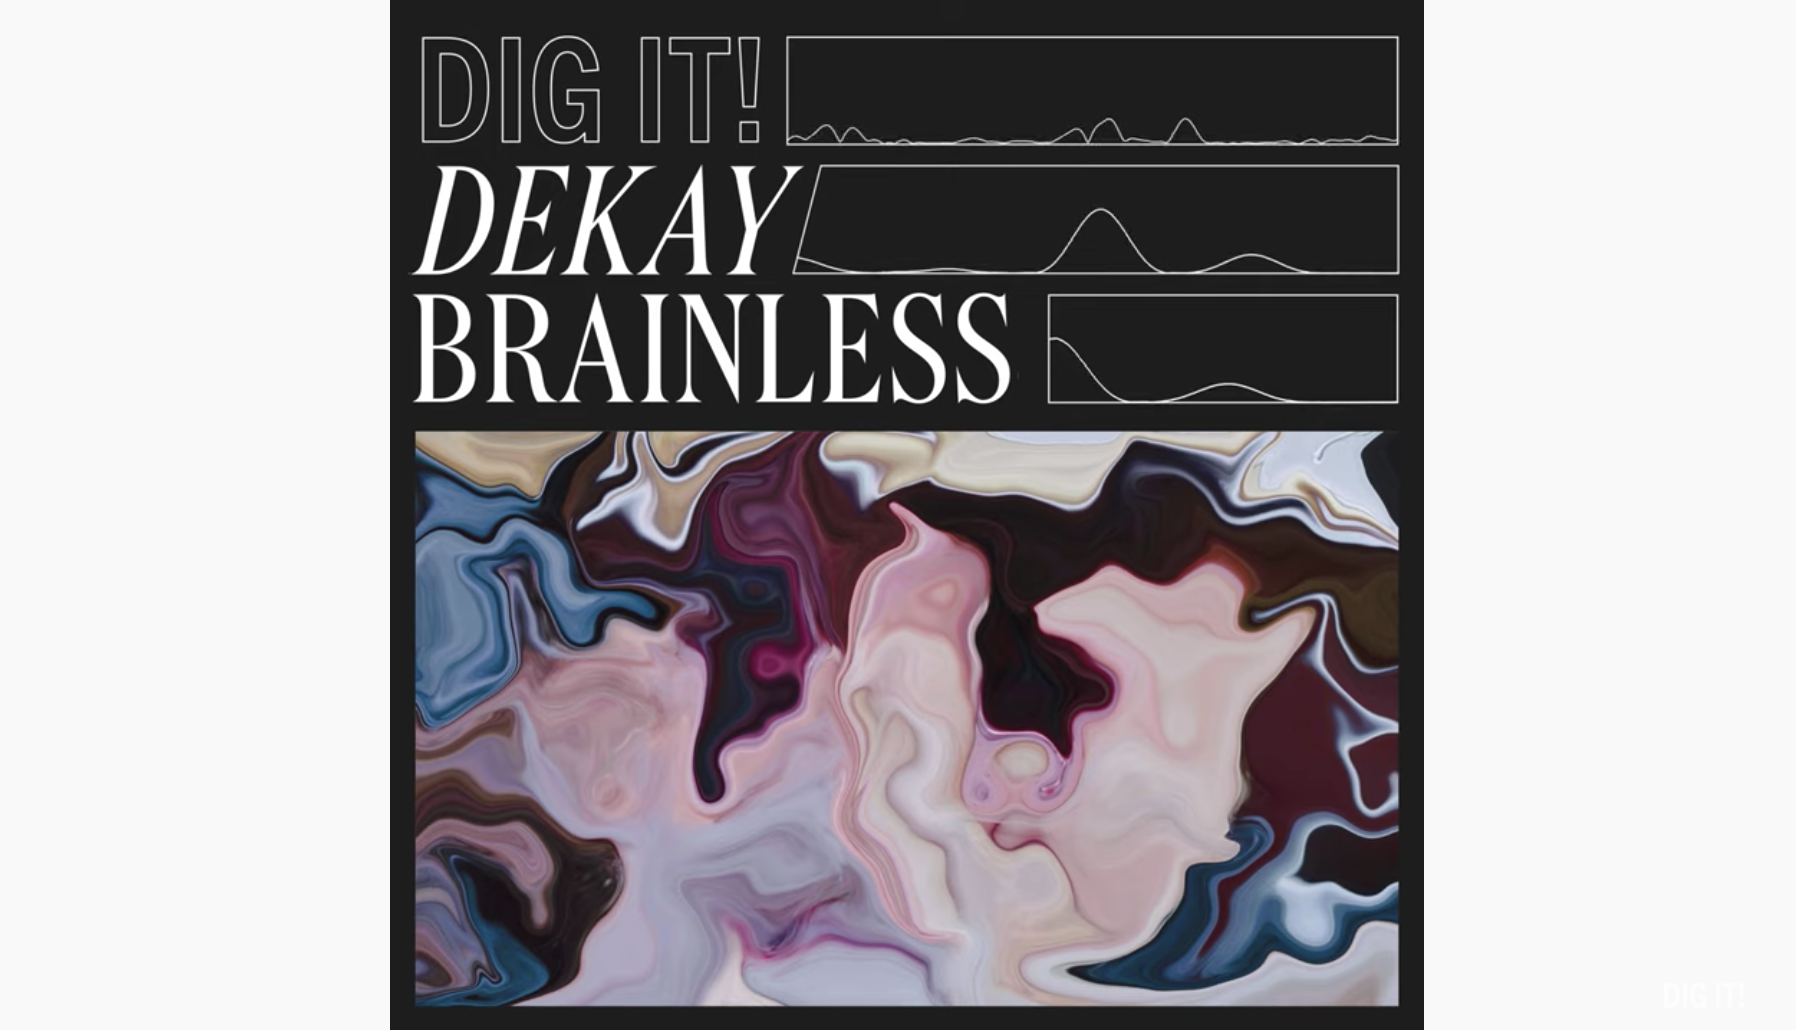 DI003 Dekay Brainless